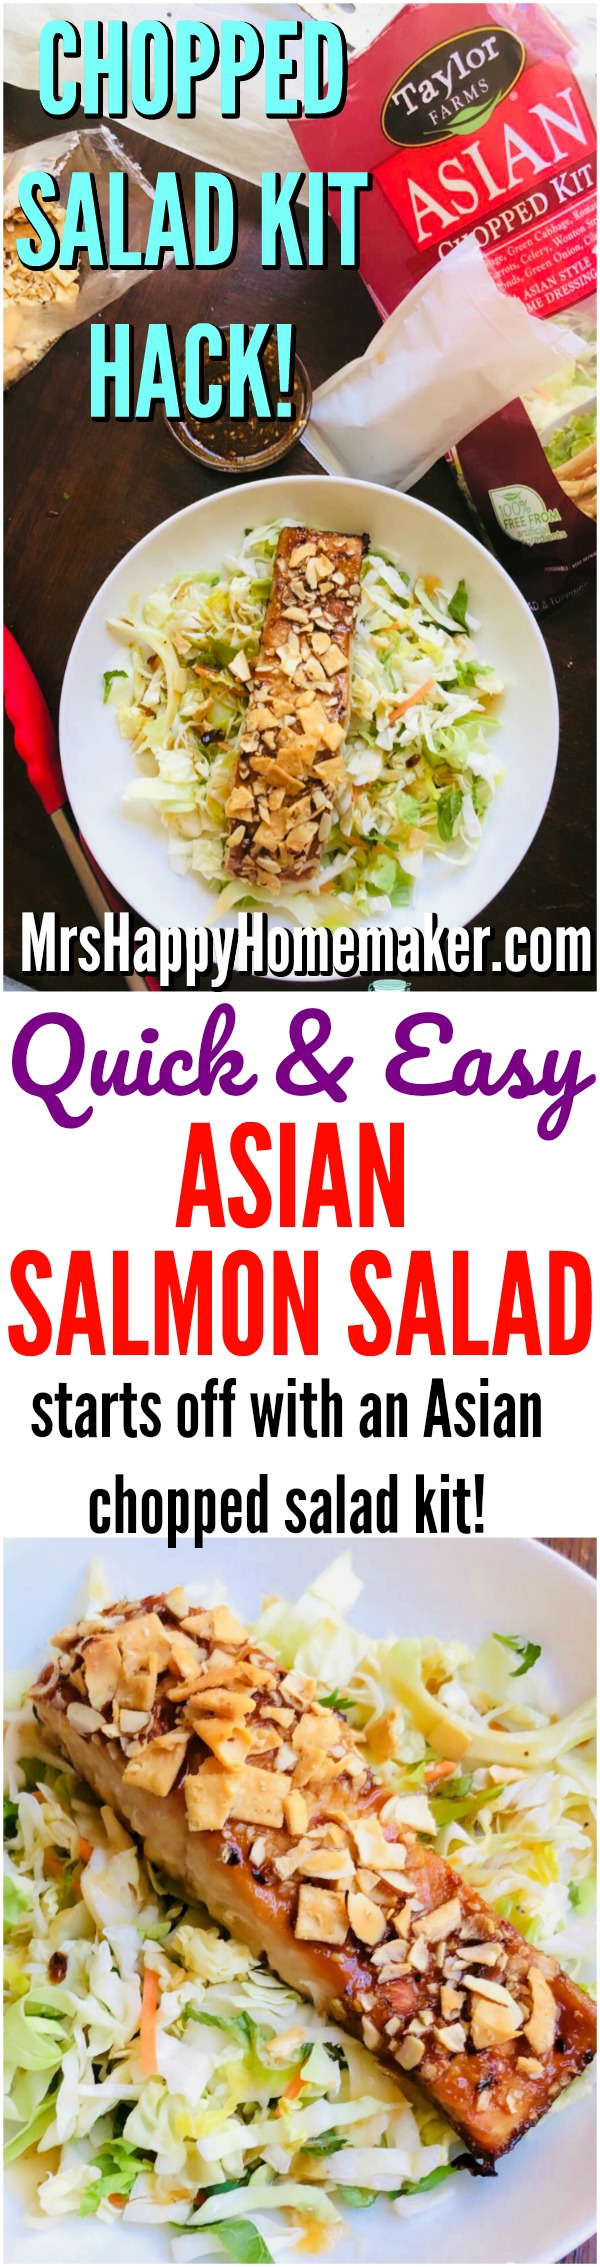 This Quick & Easy Asian Salmon Salad is so easy to throw together. It starts off with a chopped salad kit & is a delicious lunch hack! | MrsHappyHomemaker.com @thathousewife